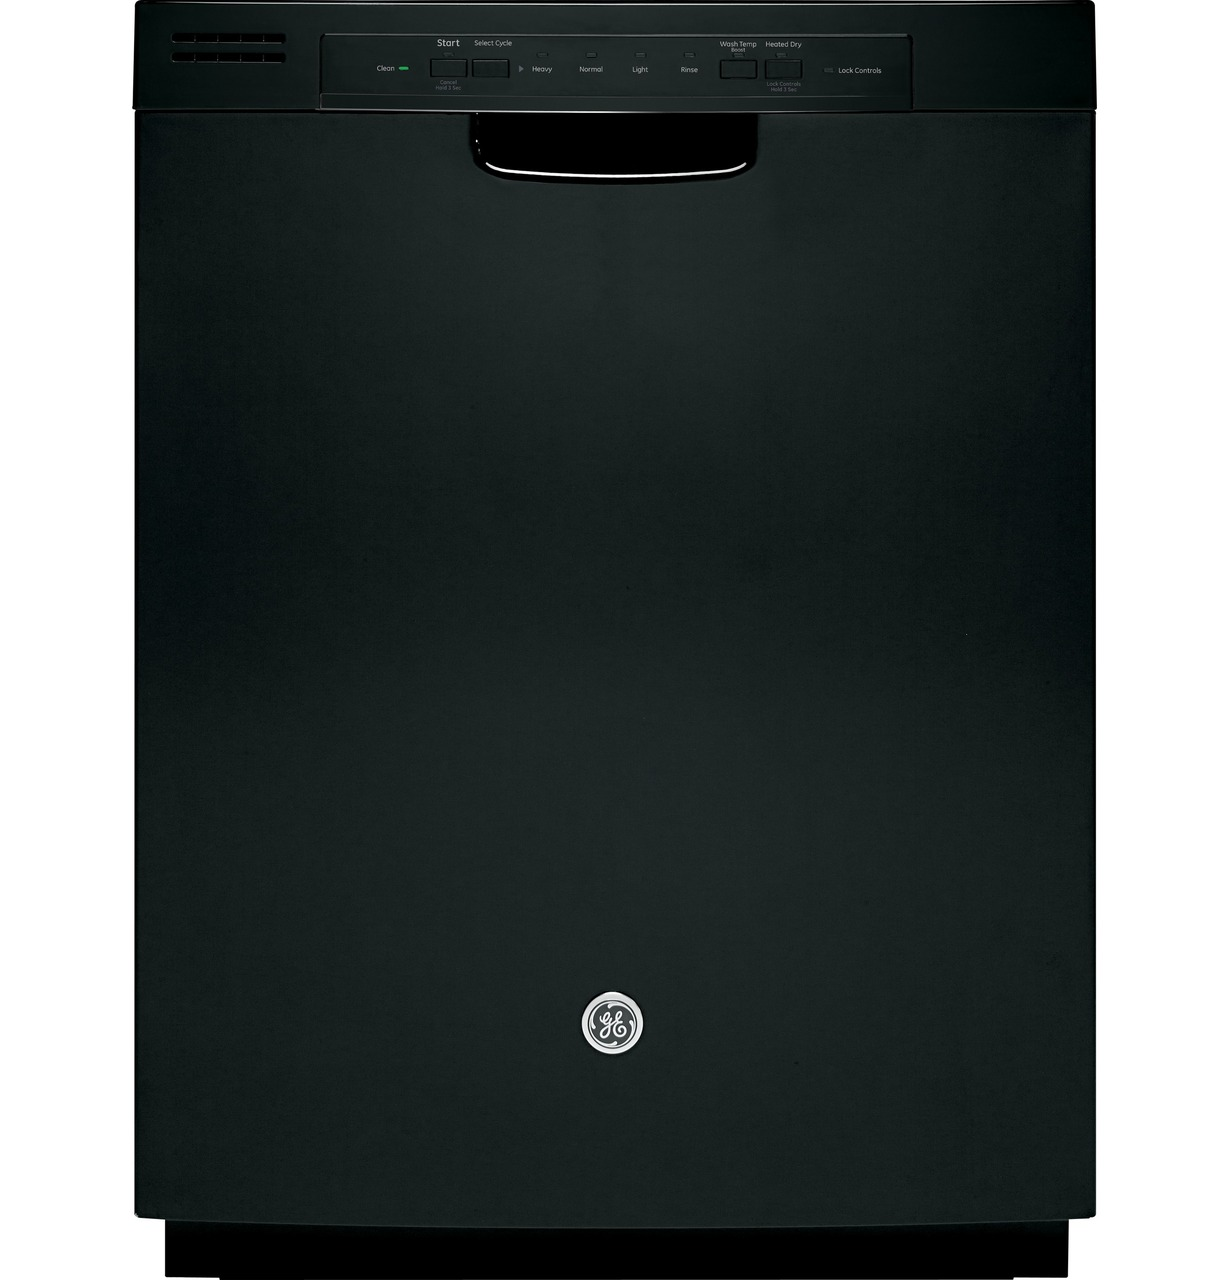 Ge Dishwasher With Front Controls Gdf510pgdbb Ge Appliances